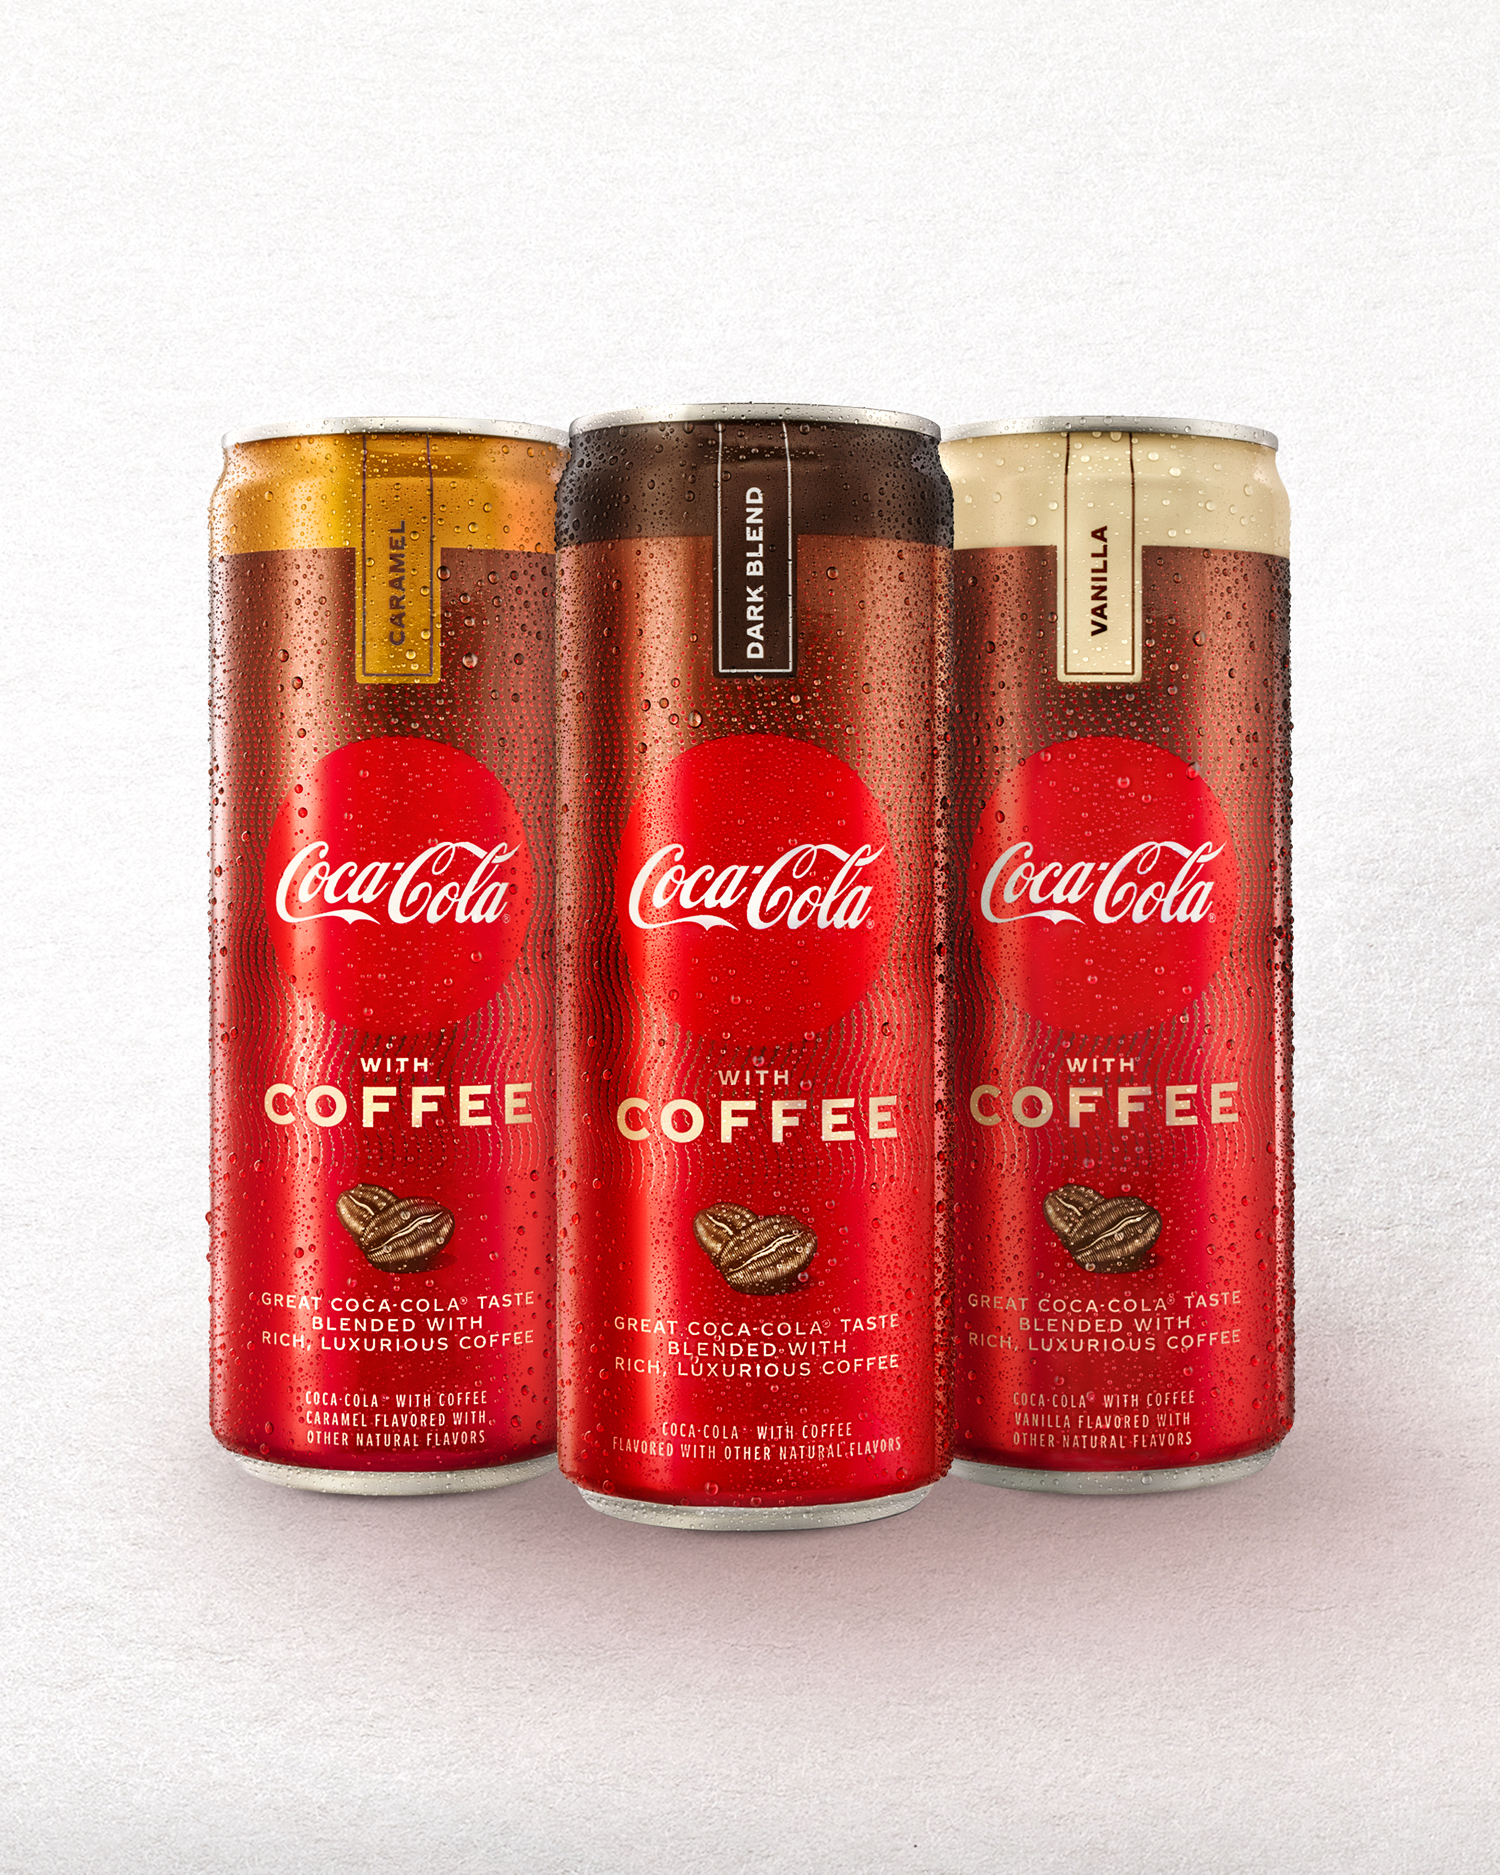 Coffee Coca-cola